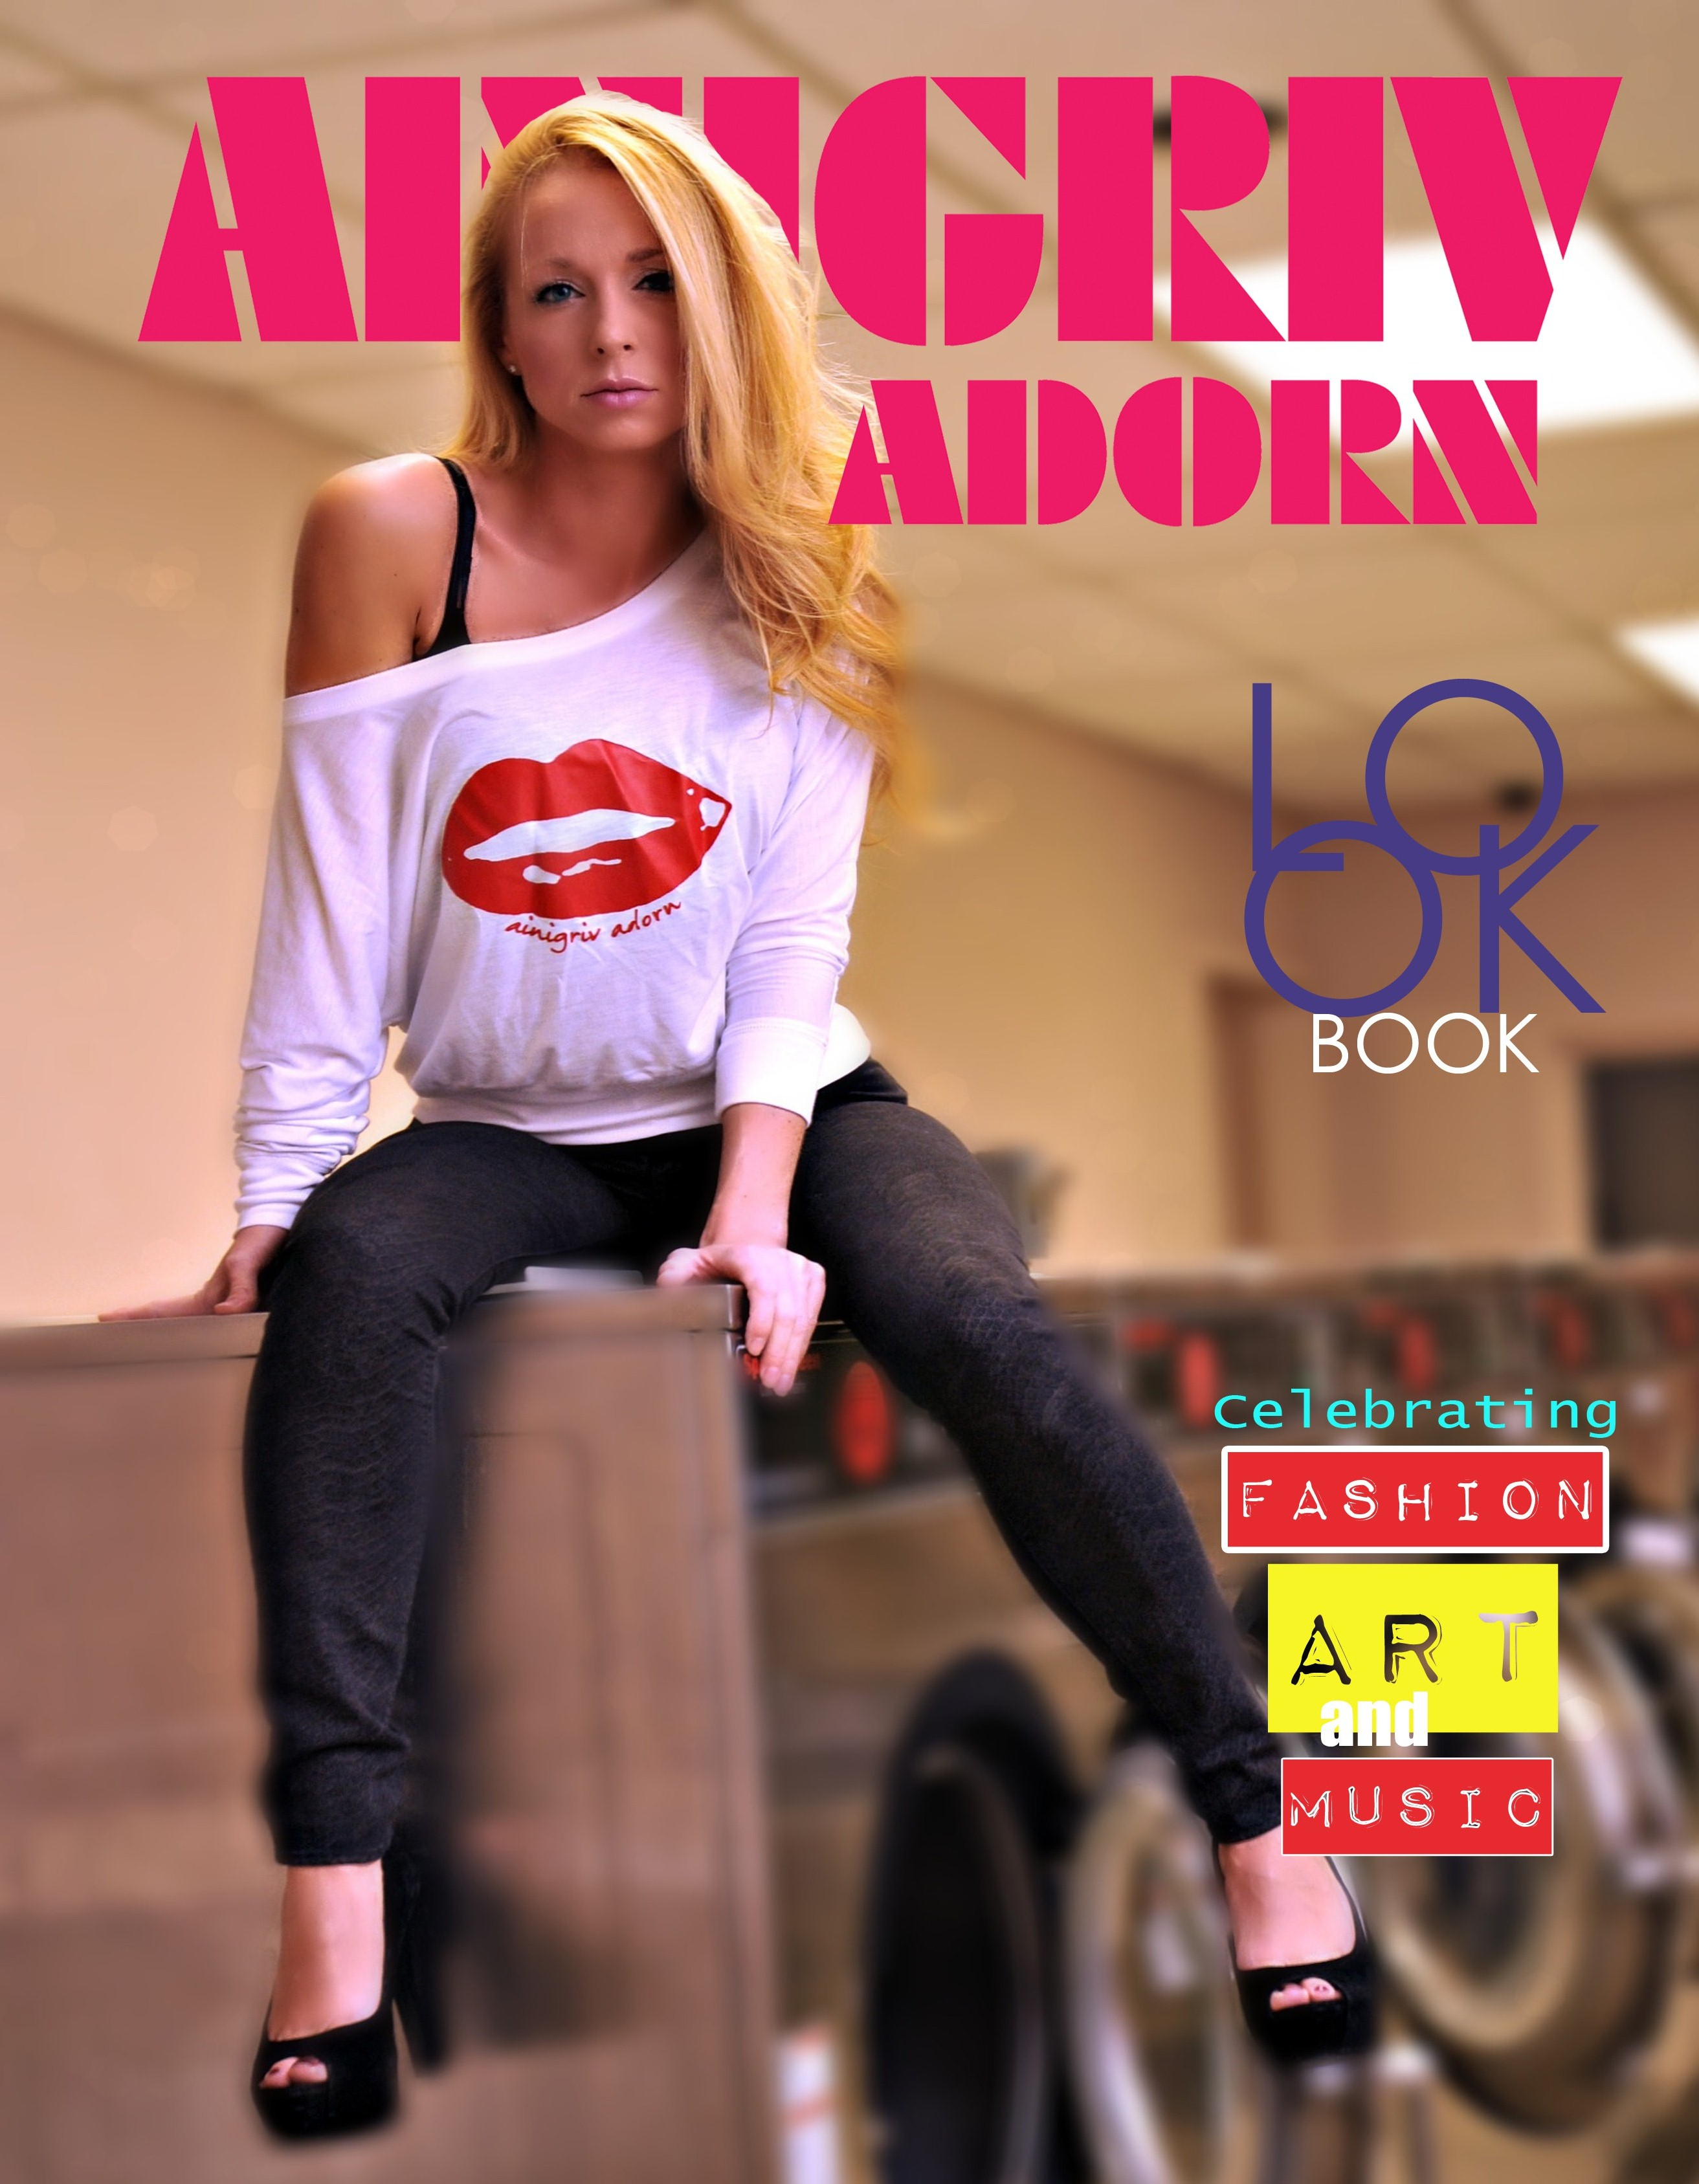 Ainigriv Adorn Look Book 8